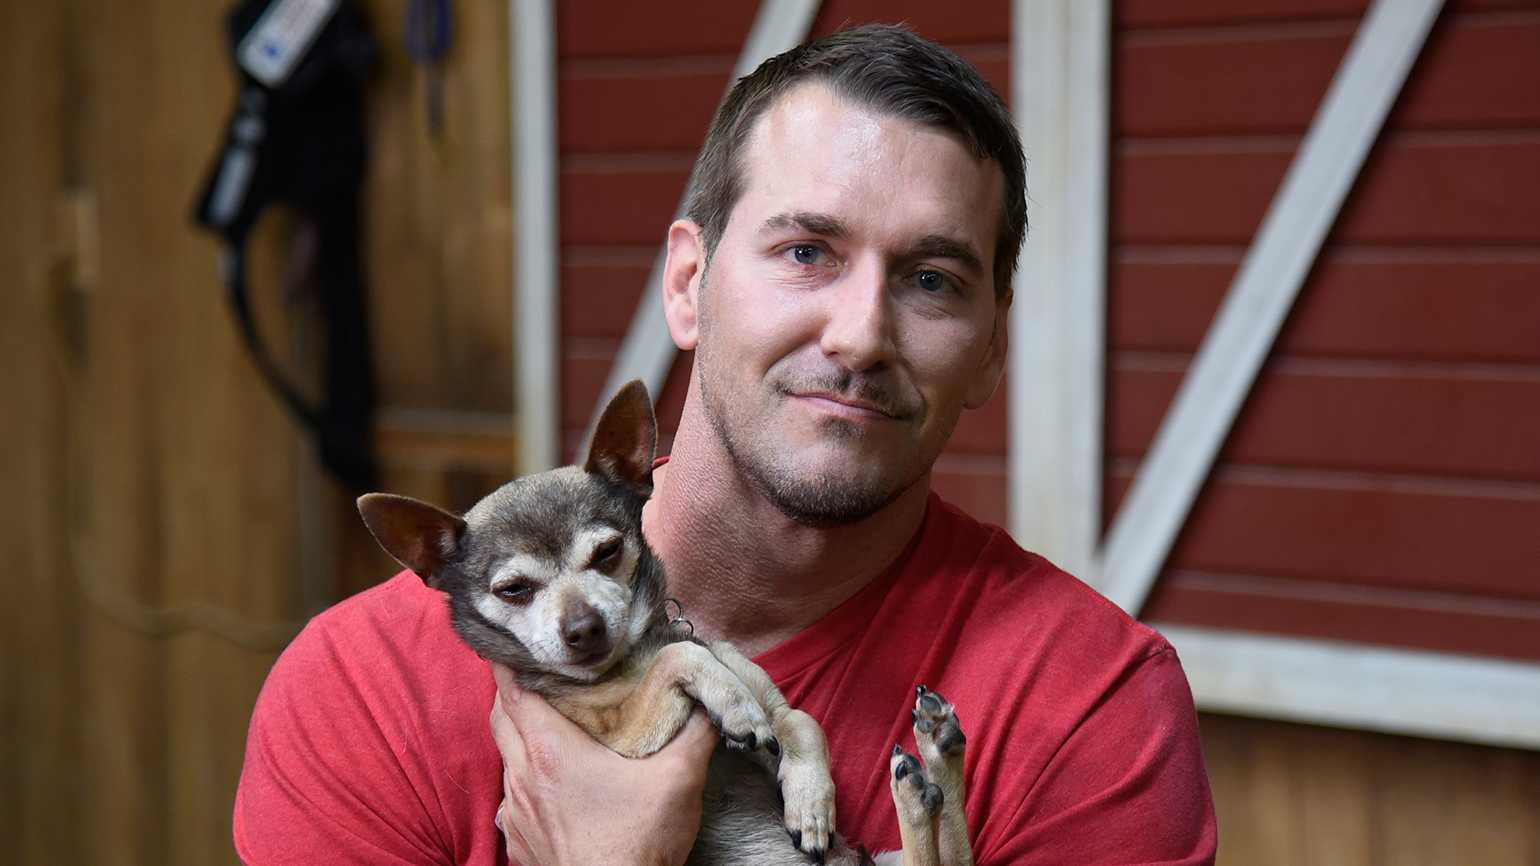 Lucky Dog host Brandon McMillan and a canine friend